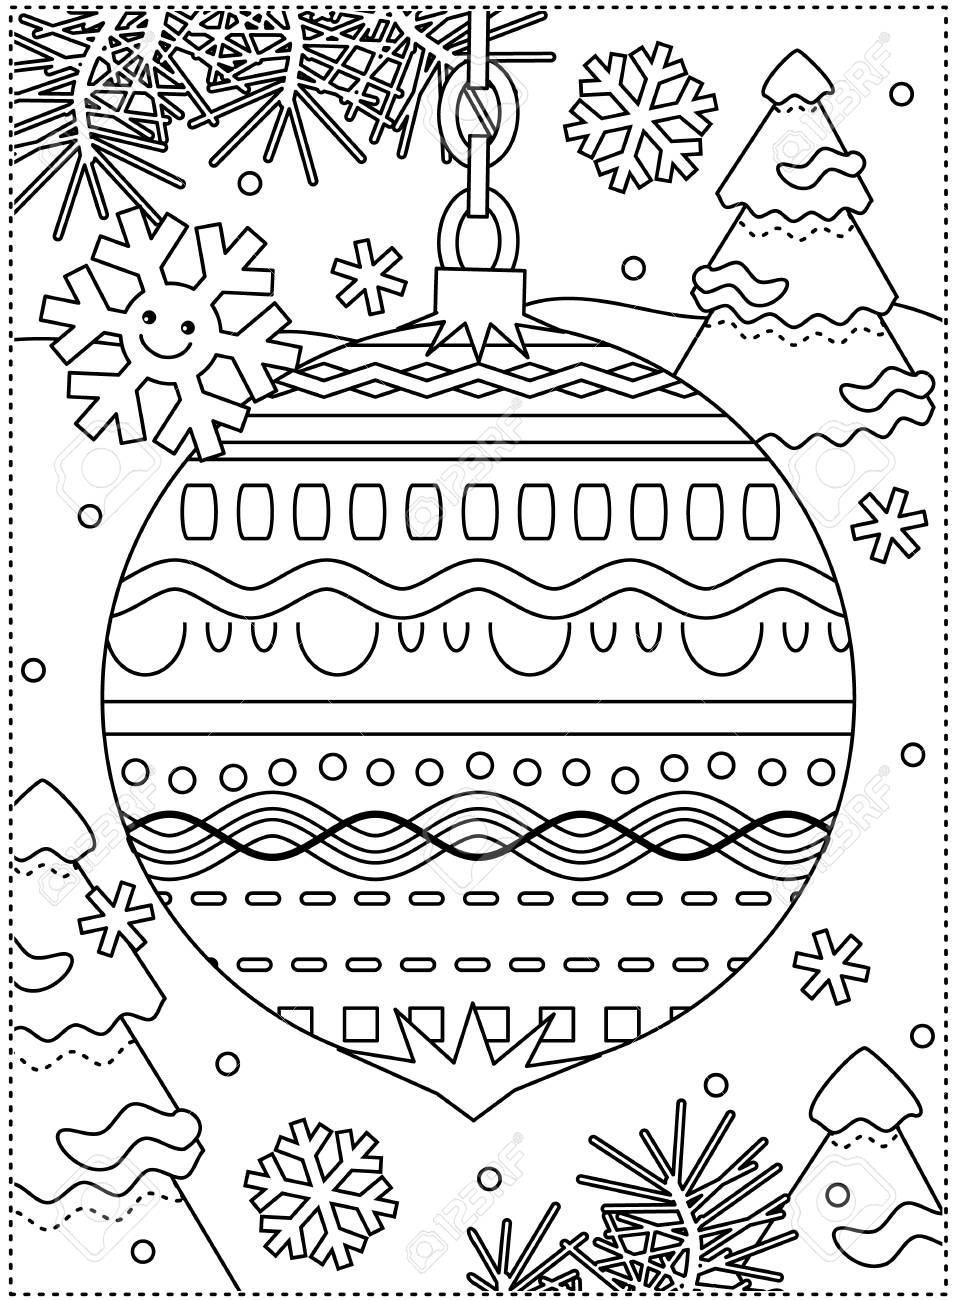 Winter Holidays Coloring Page For Kids And Grown Ups With Decorated